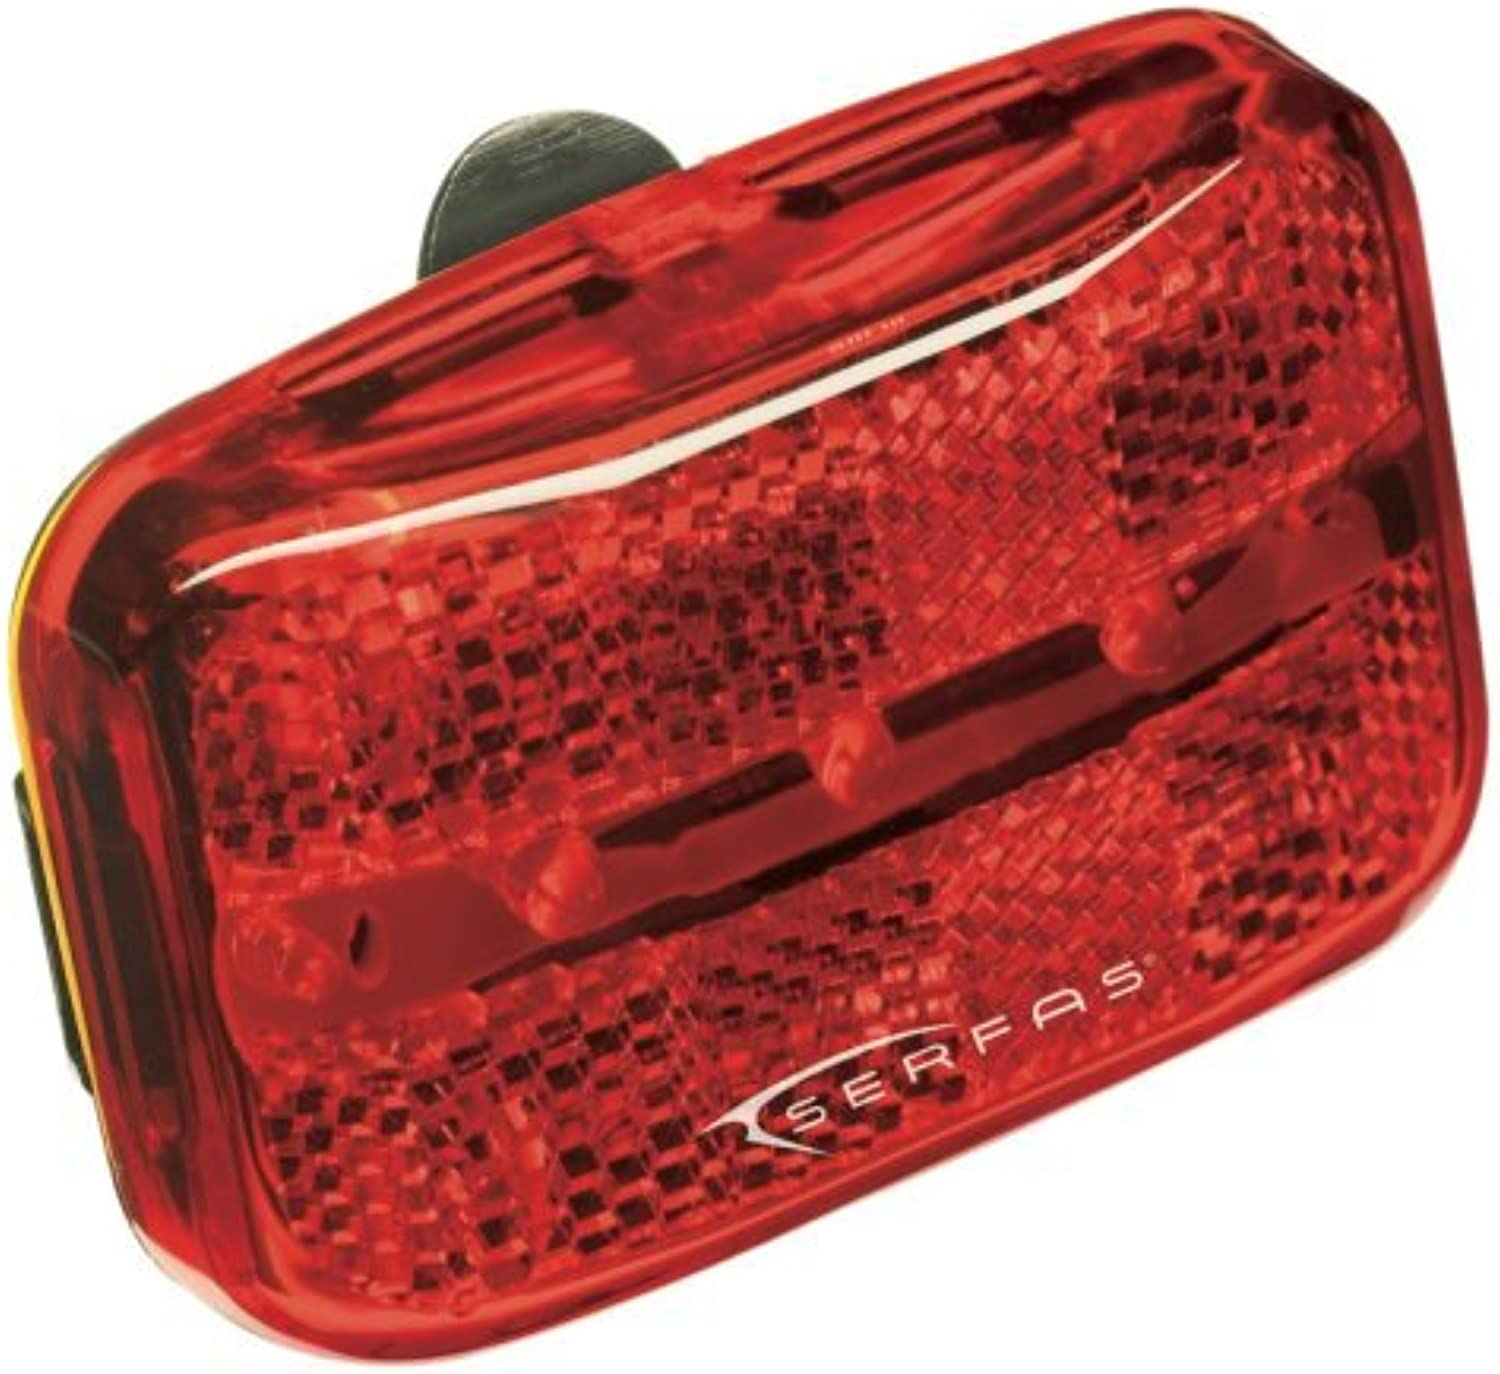 Serfas Stop Sign Taillight by Serfas